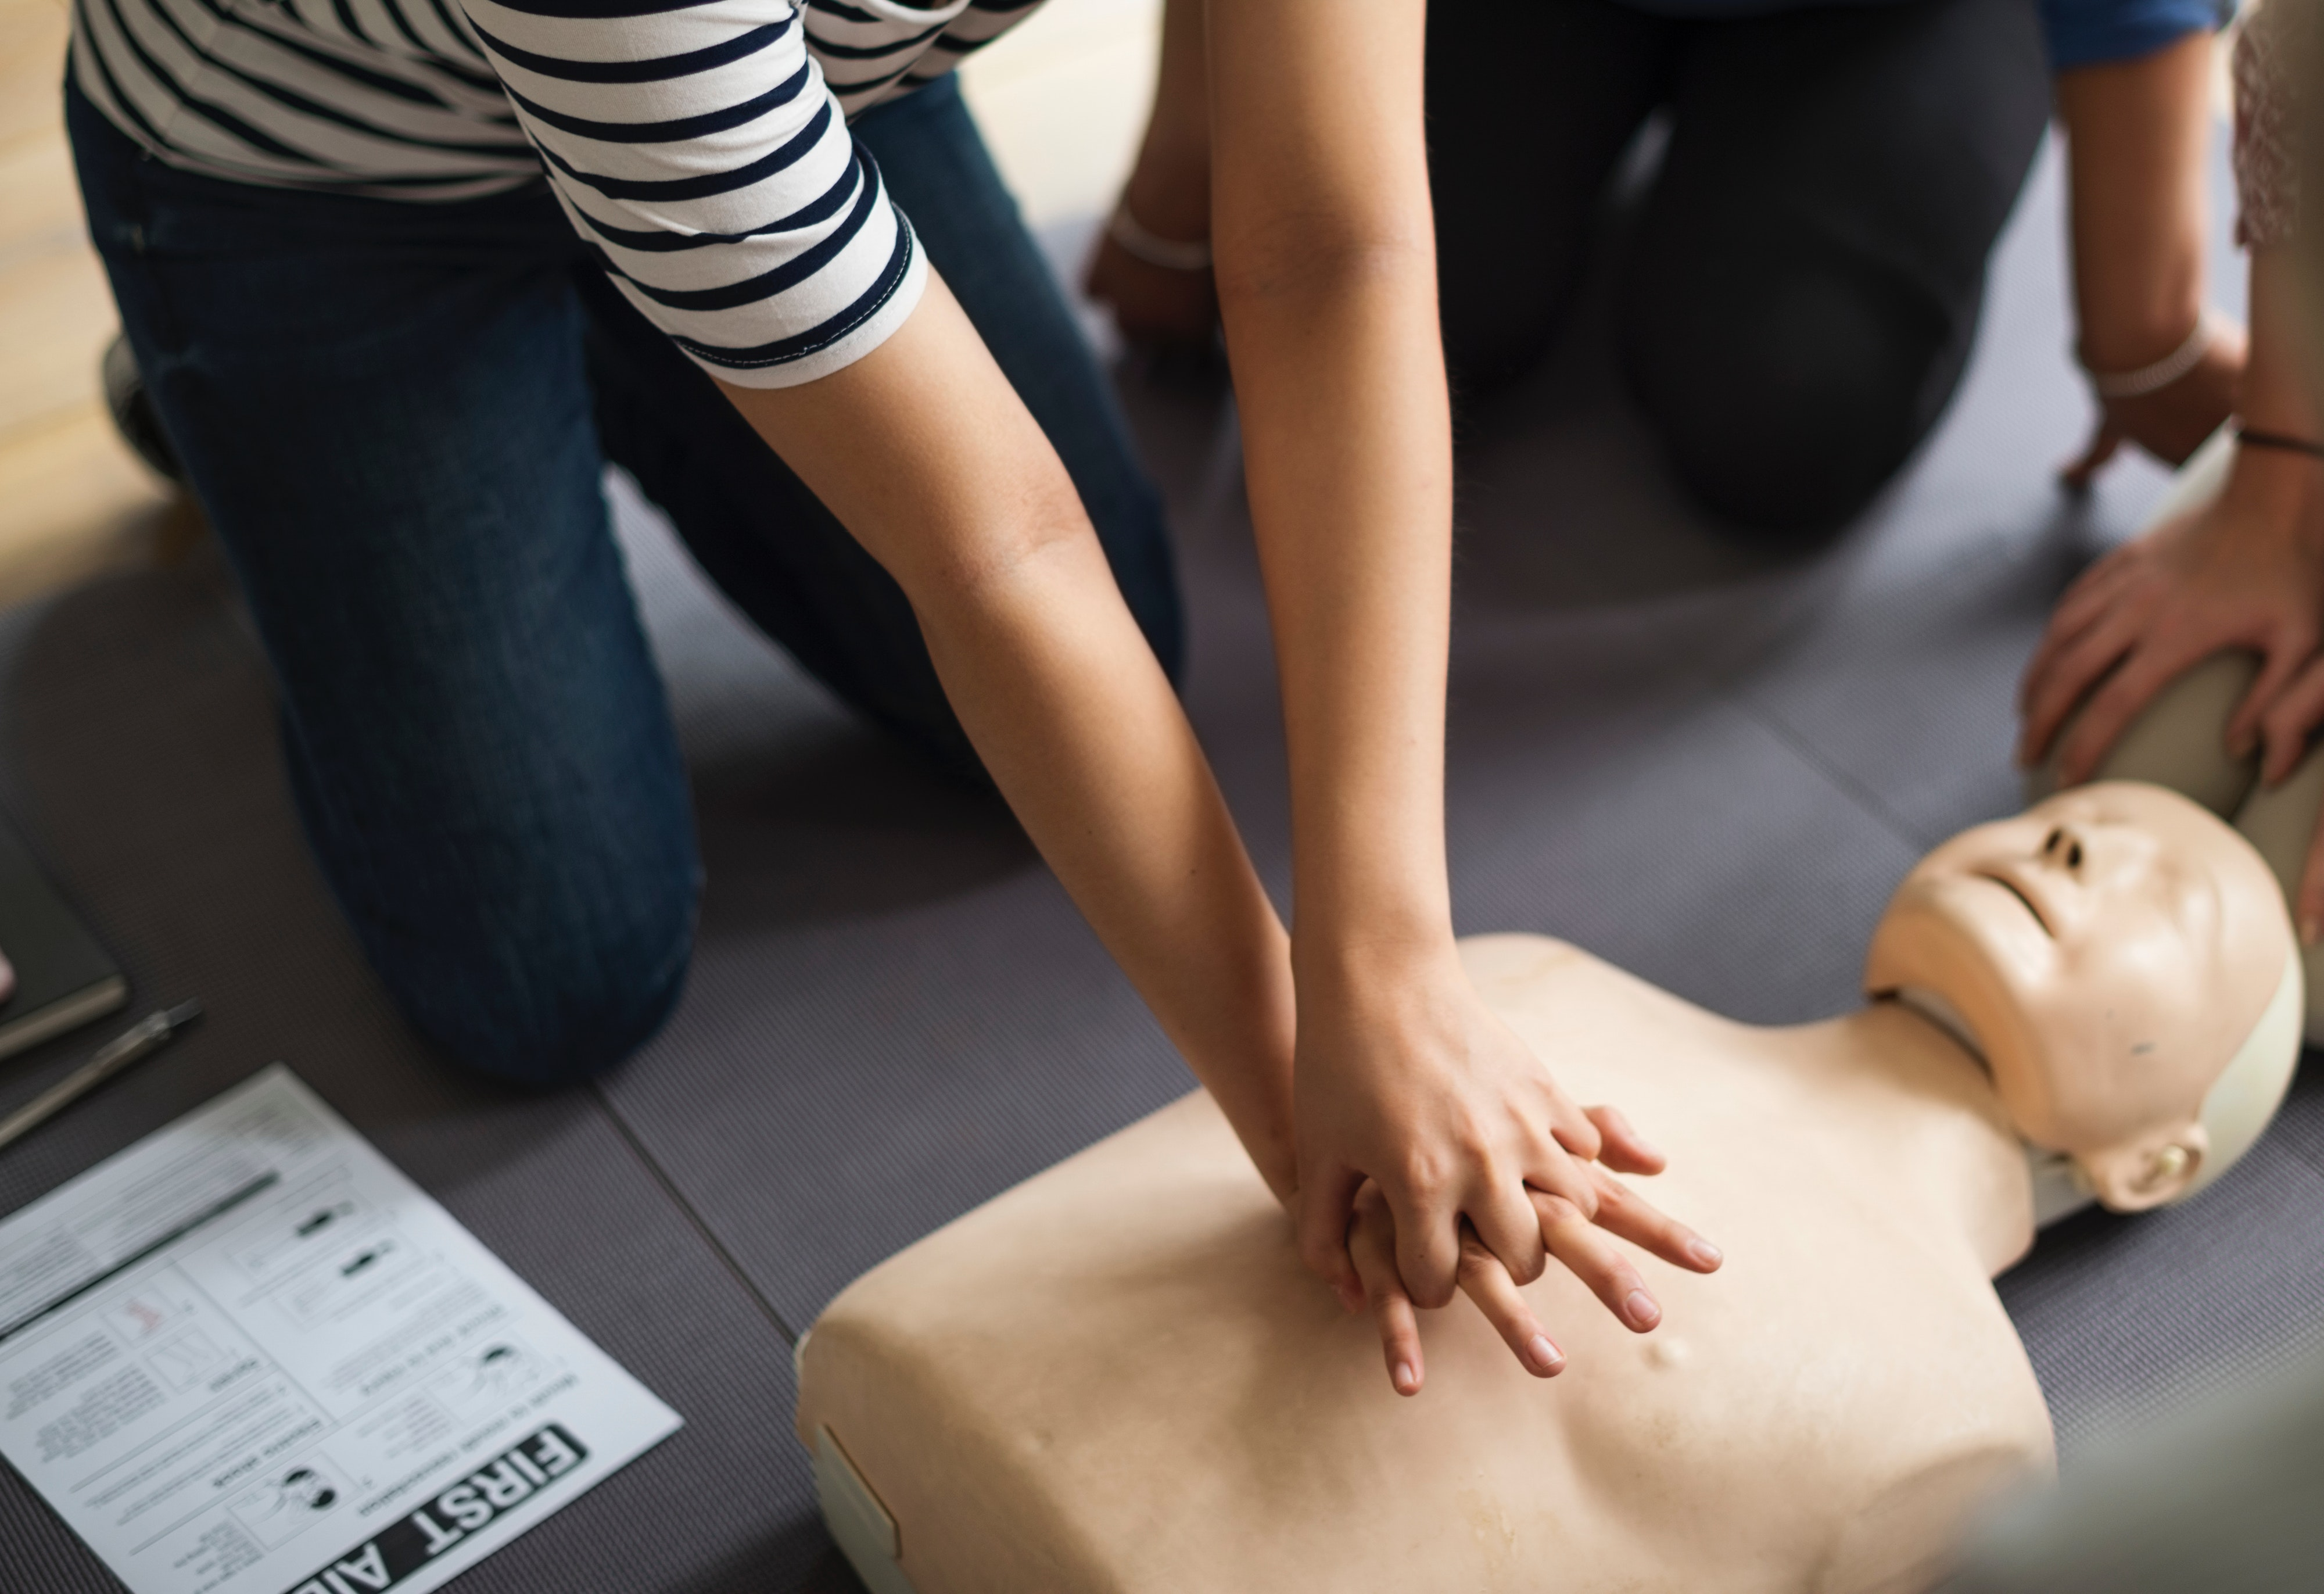 Person performing CPR on a dummy